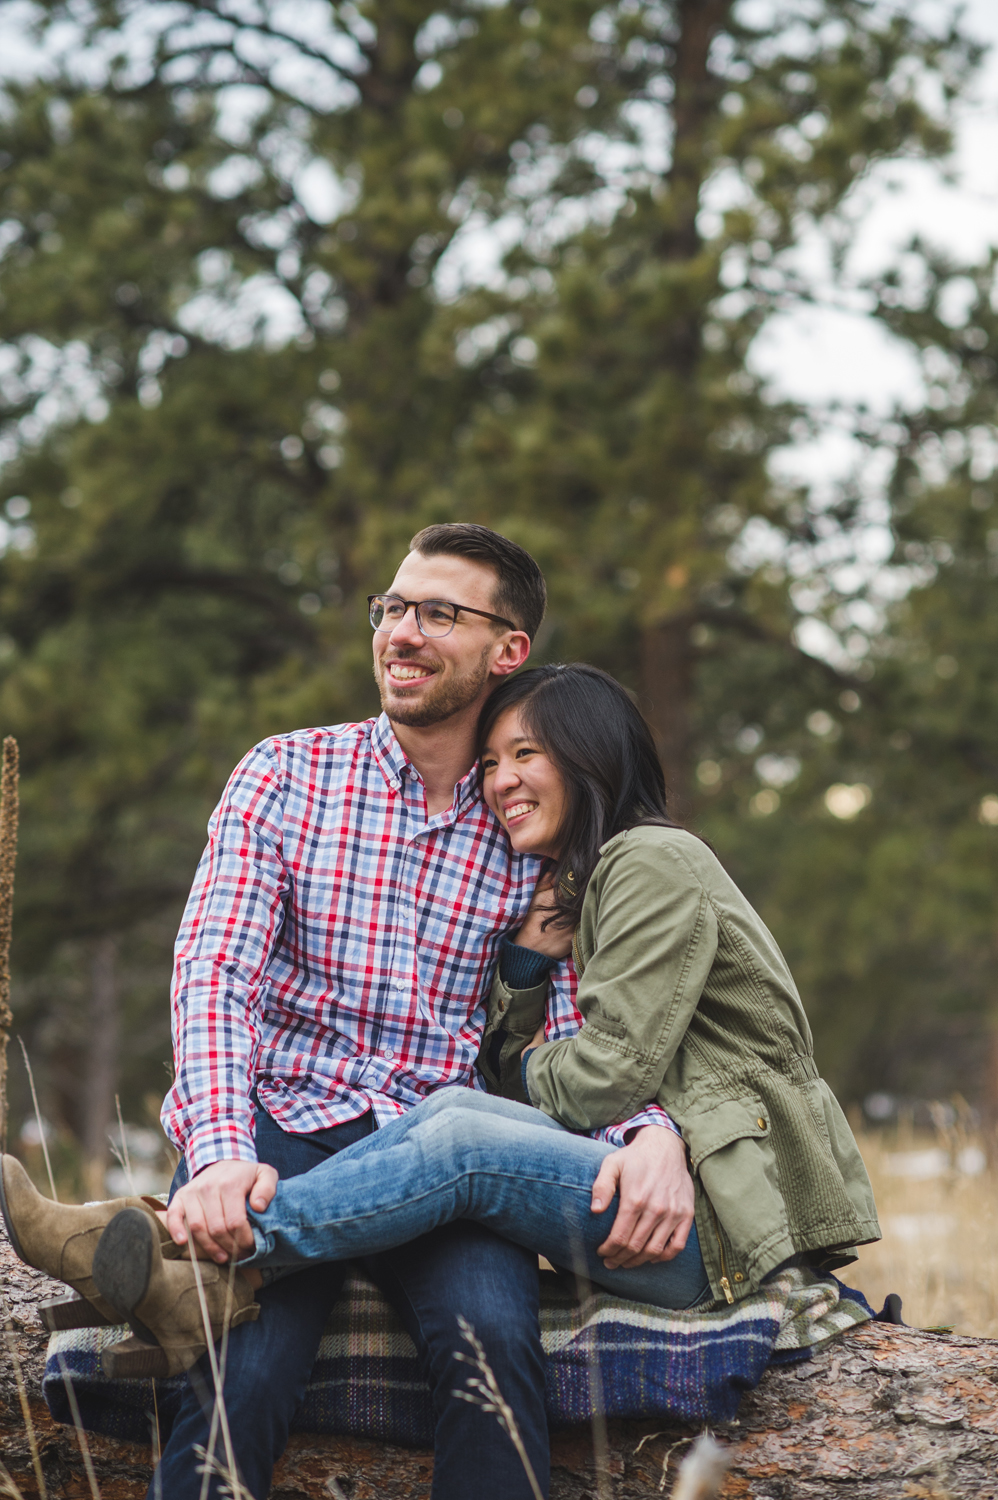 TiffanyandMark_Engaged_0440_squarespace.jpg